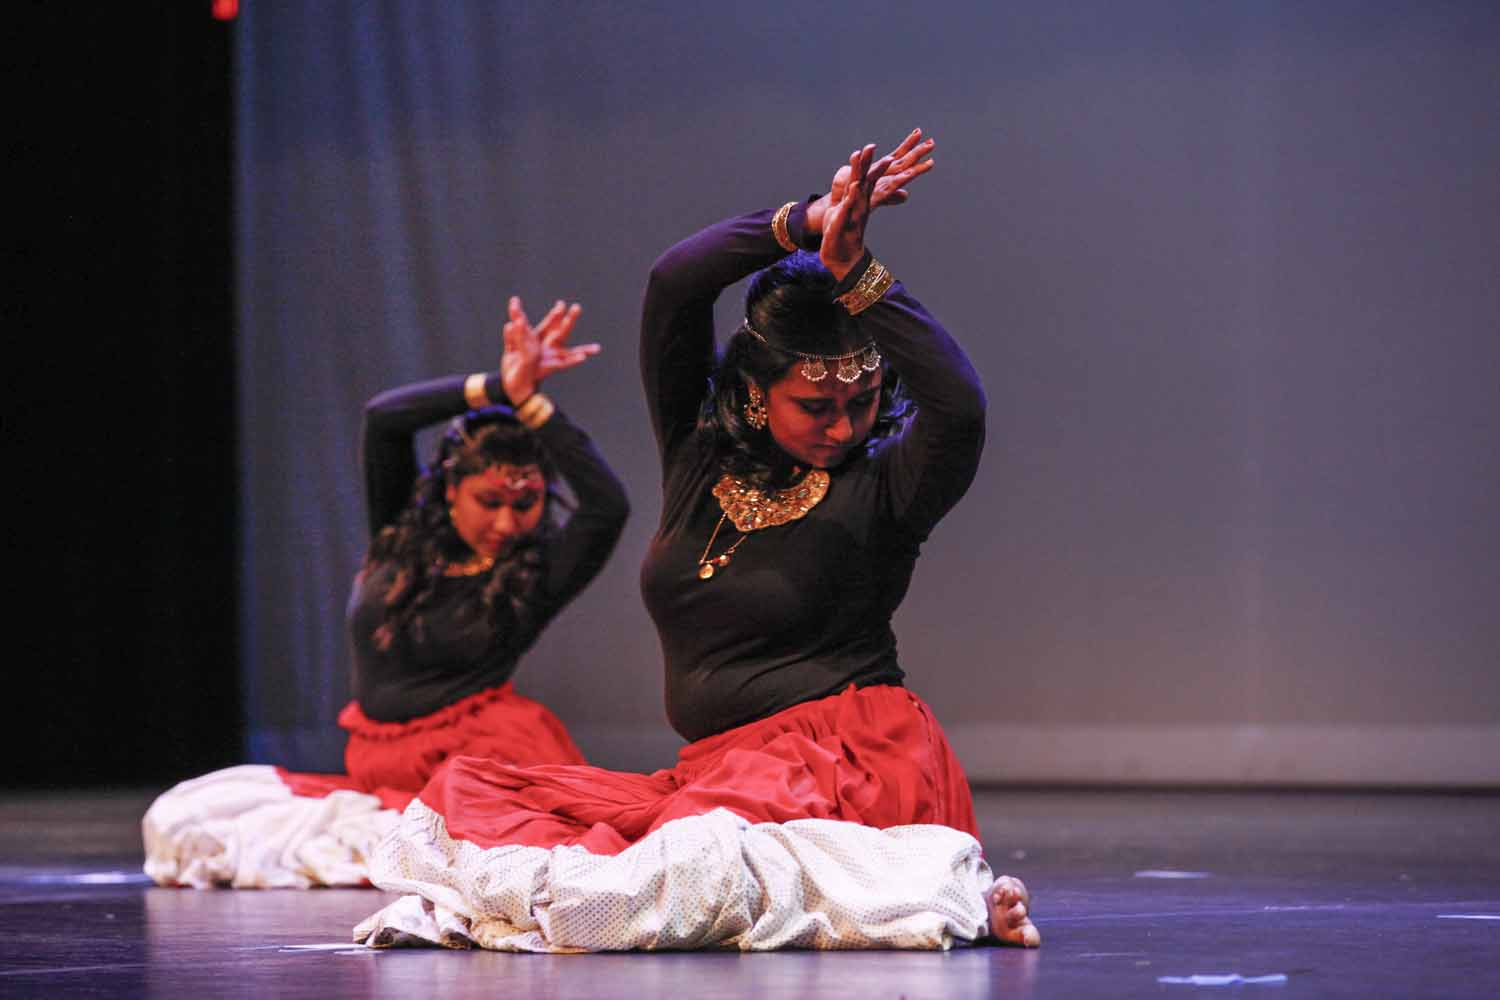 Dancers posing in seated position on stage.